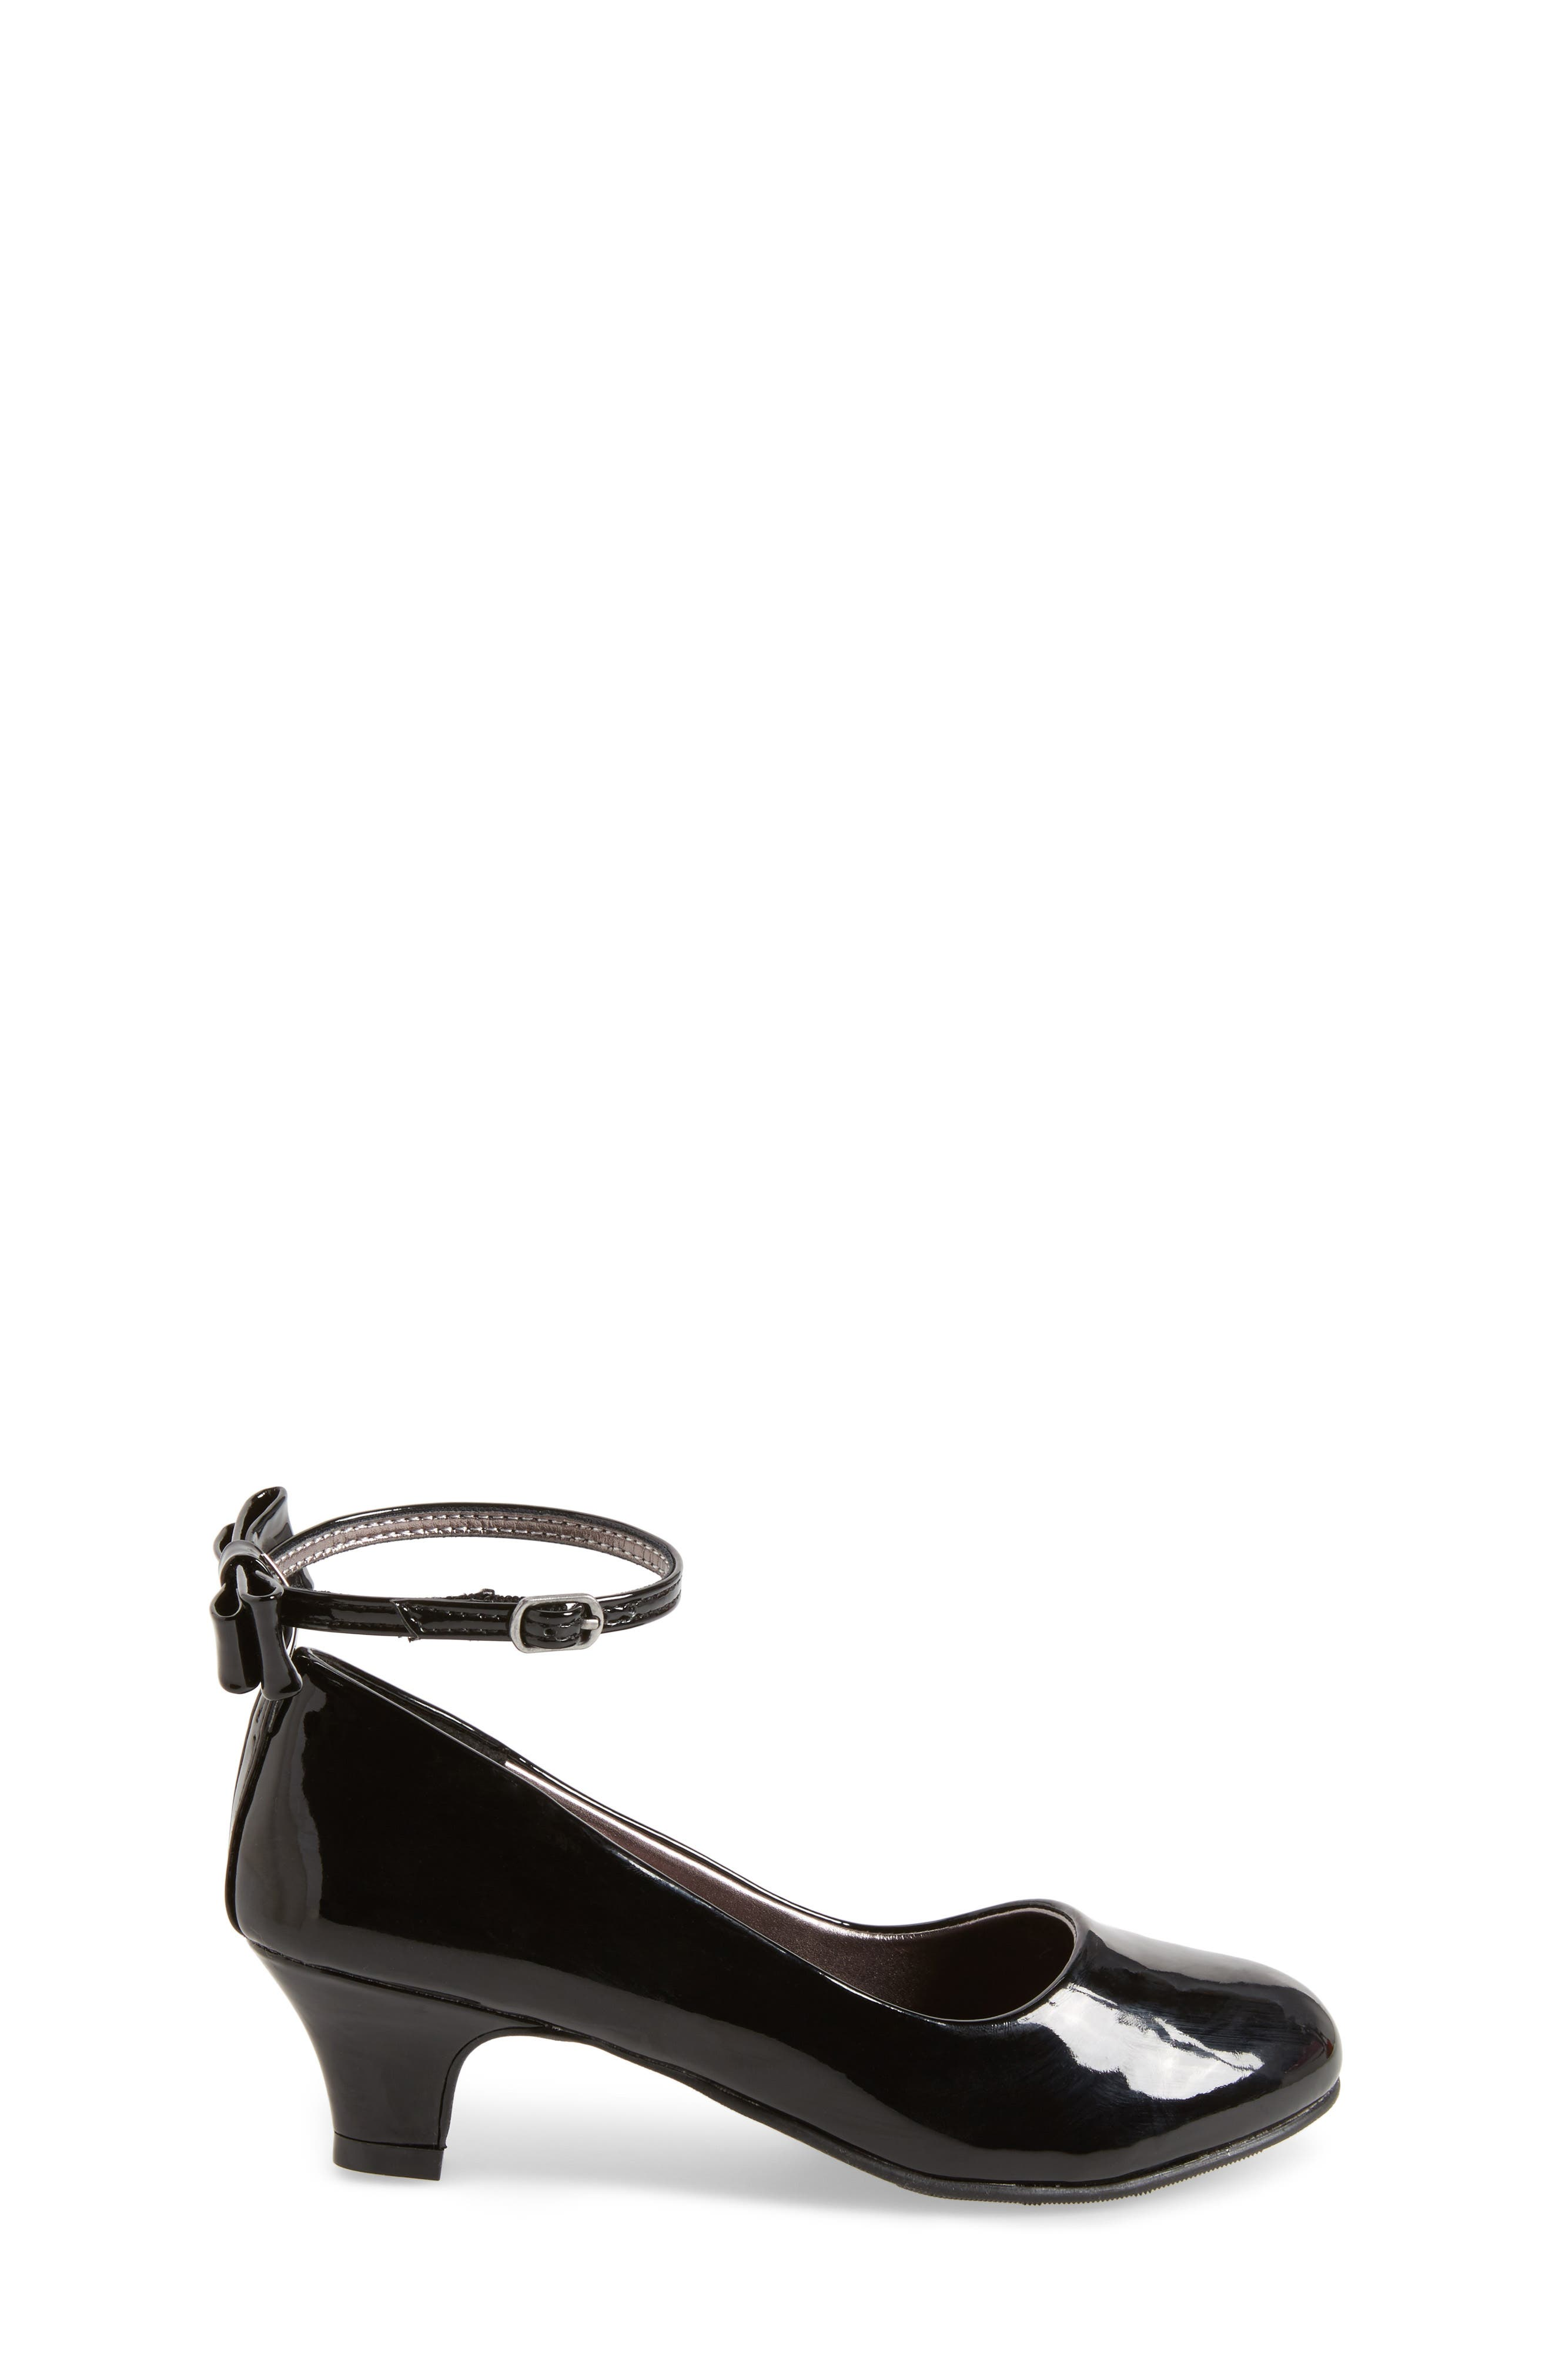 Alternate Image 3  - Steve Madden Jbeckyy Ankle Strap Bow Pump (Little Kid & Big Kid)